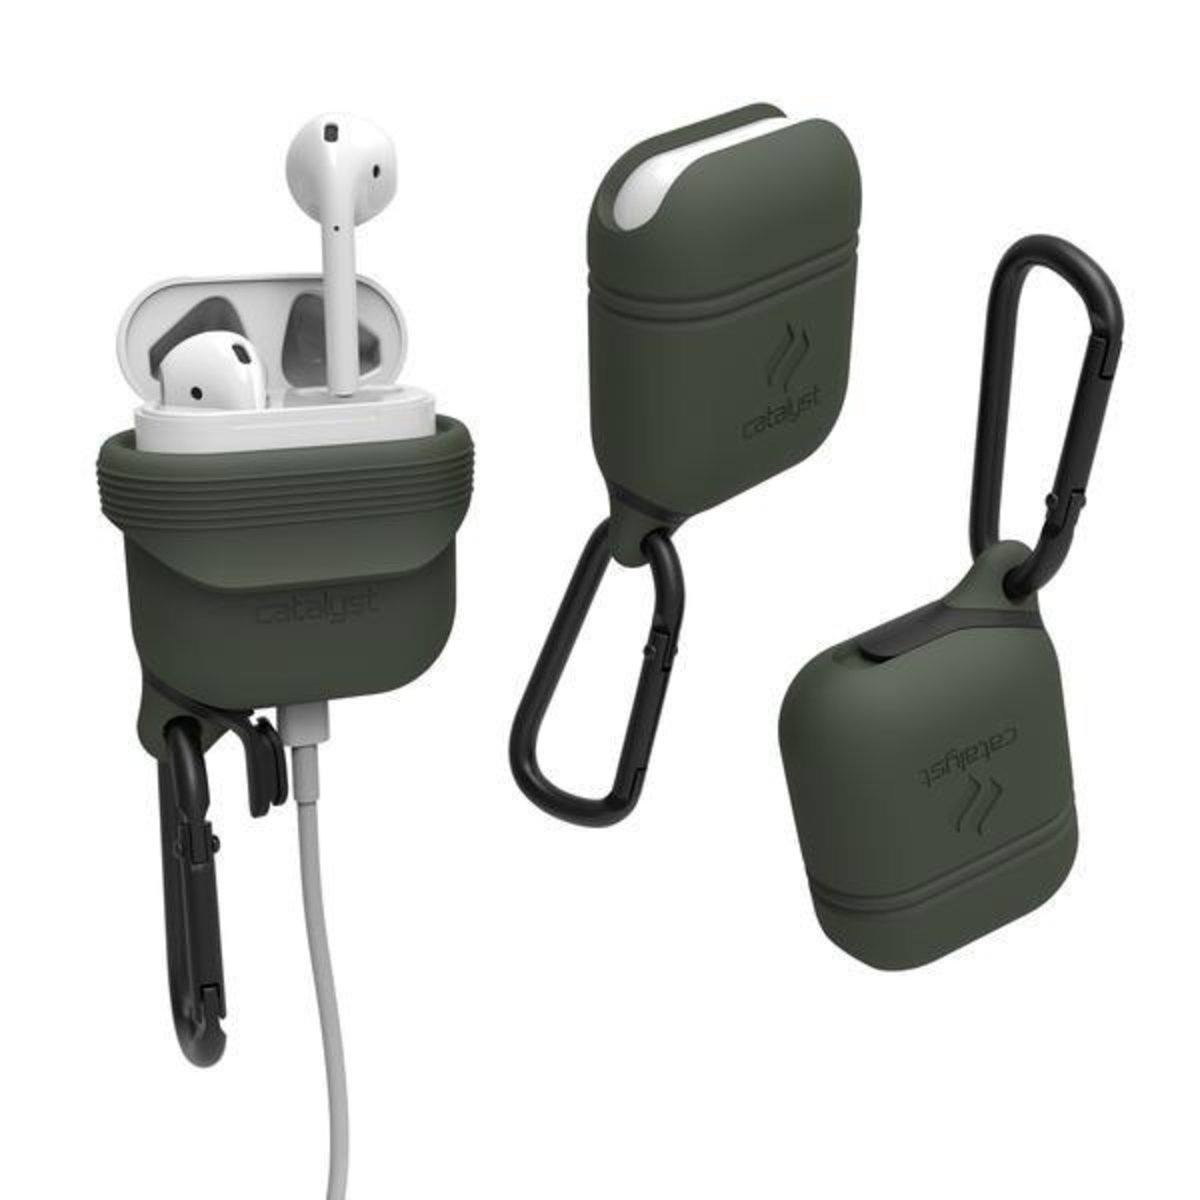 WATERPROOF Drop proof IP67 CASE with HOOK For Airpods Army Green